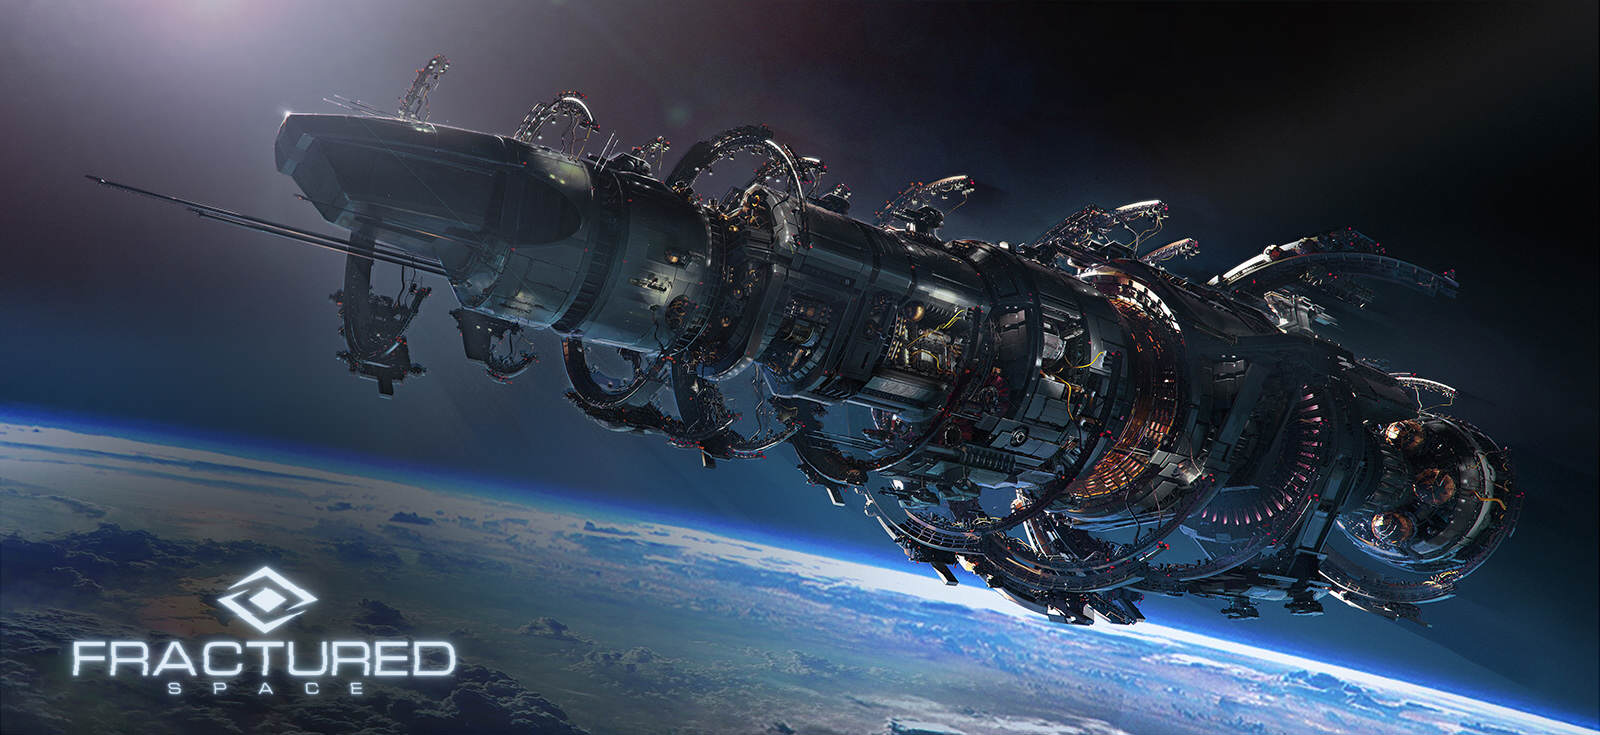 You Can Get Fractured Space For Free This Weekend fractured space 1